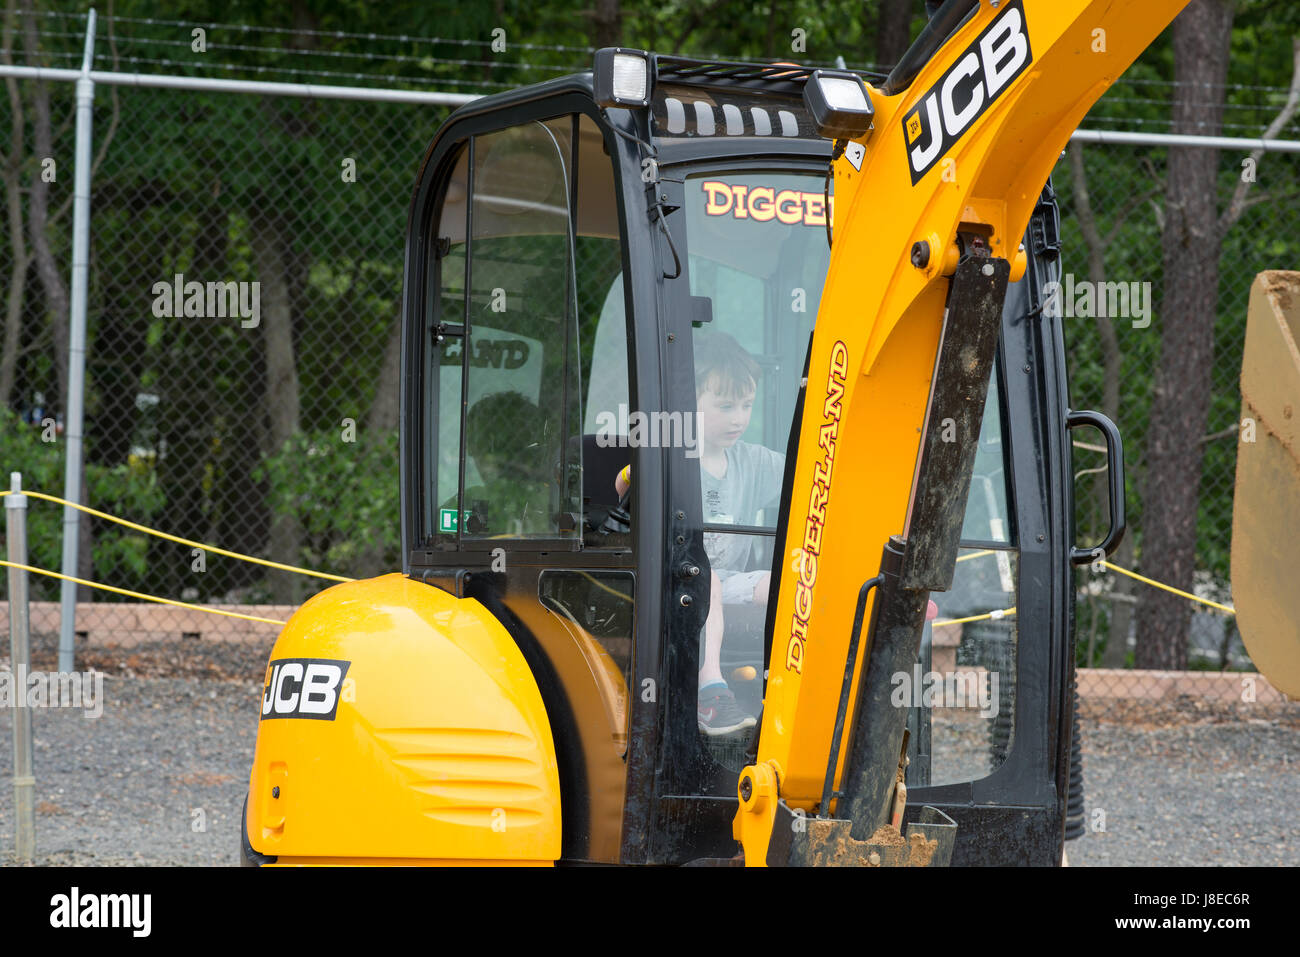 West Berlin, New Jersey, USA. 28th May, 2017. Diggerland USA, the only construction themed adventure park in North - Stock Image